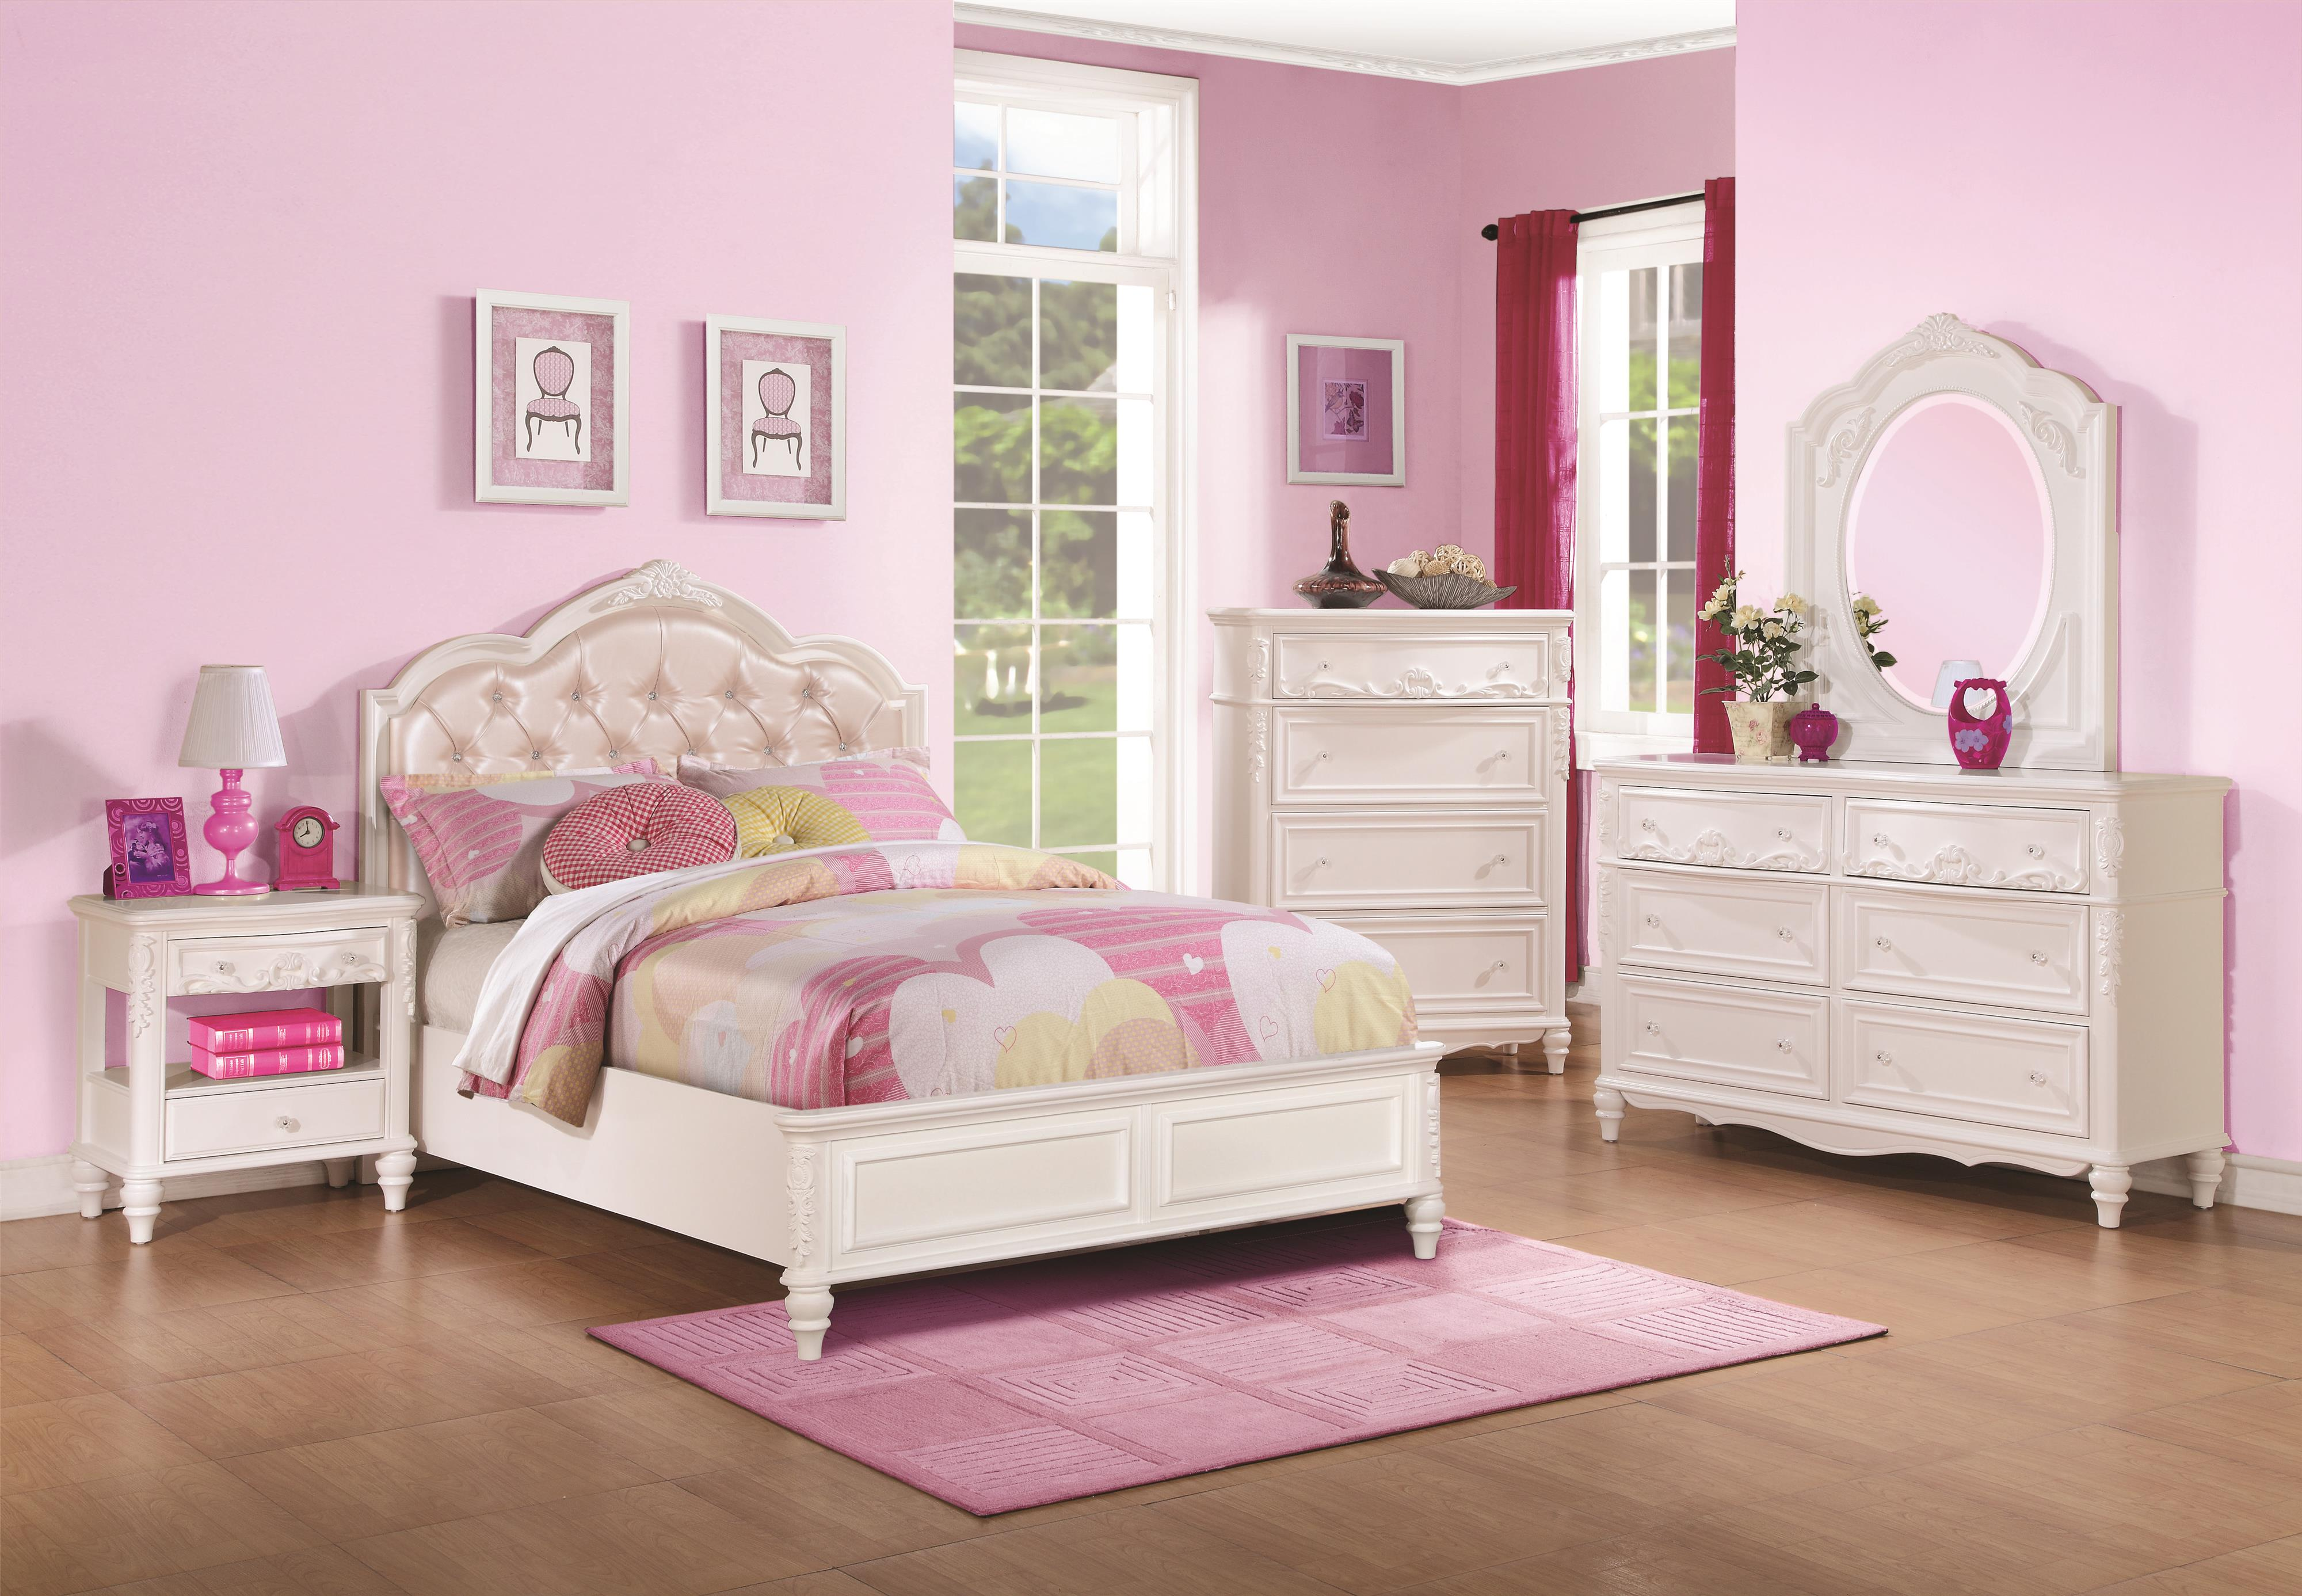 Twin Size Bed and Diamond Tufted Headboard by Coaster